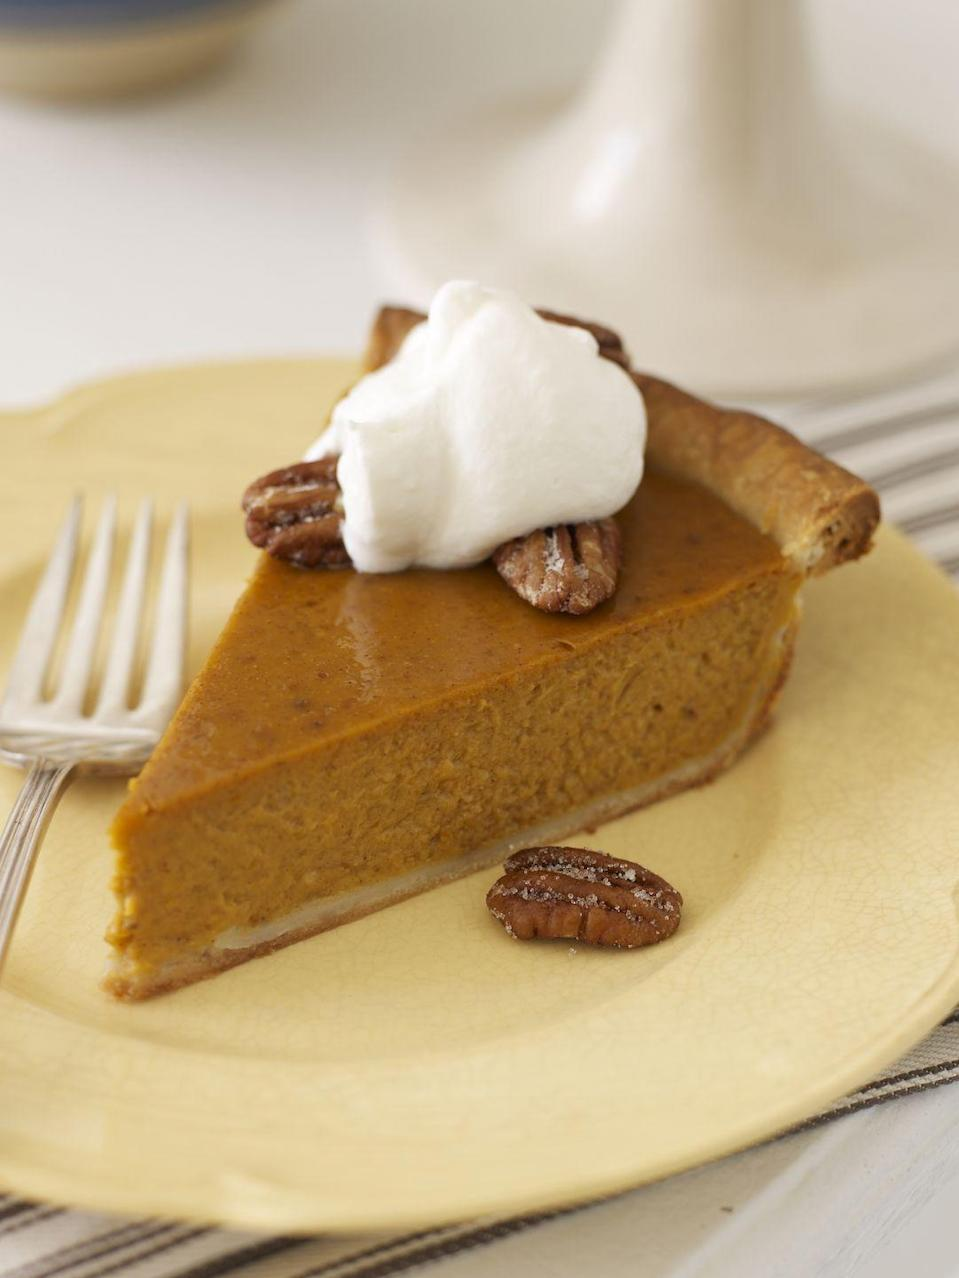 "<p>No Turkey Day feast is complete without this classic. Give this quickie recipe — complete with a dollop of creamy, spiked whipped cream — a try.</p><p><a href=""https://www.goodhousekeeping.com/food-recipes/a8361/pumpkin-pie-bourbon-whipped-cream-ghk1107/"" rel=""nofollow noopener"" target=""_blank"" data-ylk=""slk:Get the recipe for Pumpkin Pie with Bourbon Whipped Cream »"" class=""link rapid-noclick-resp""><em>Get the recipe for Pumpkin Pie with Bourbon Whipped Cream »</em></a></p>"